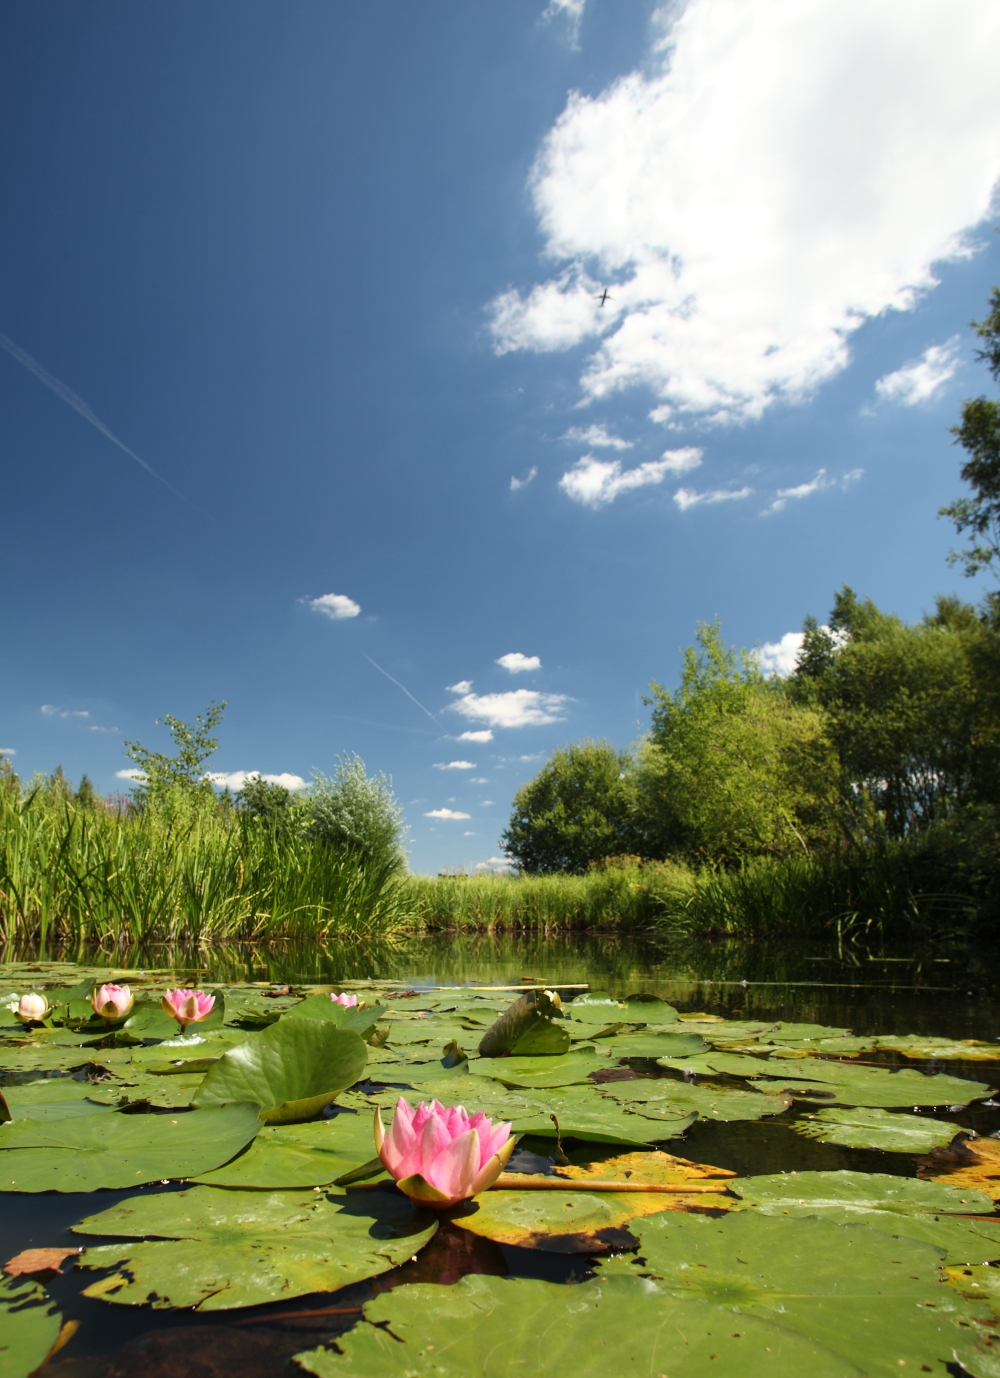 Water lilies 2 by I Green